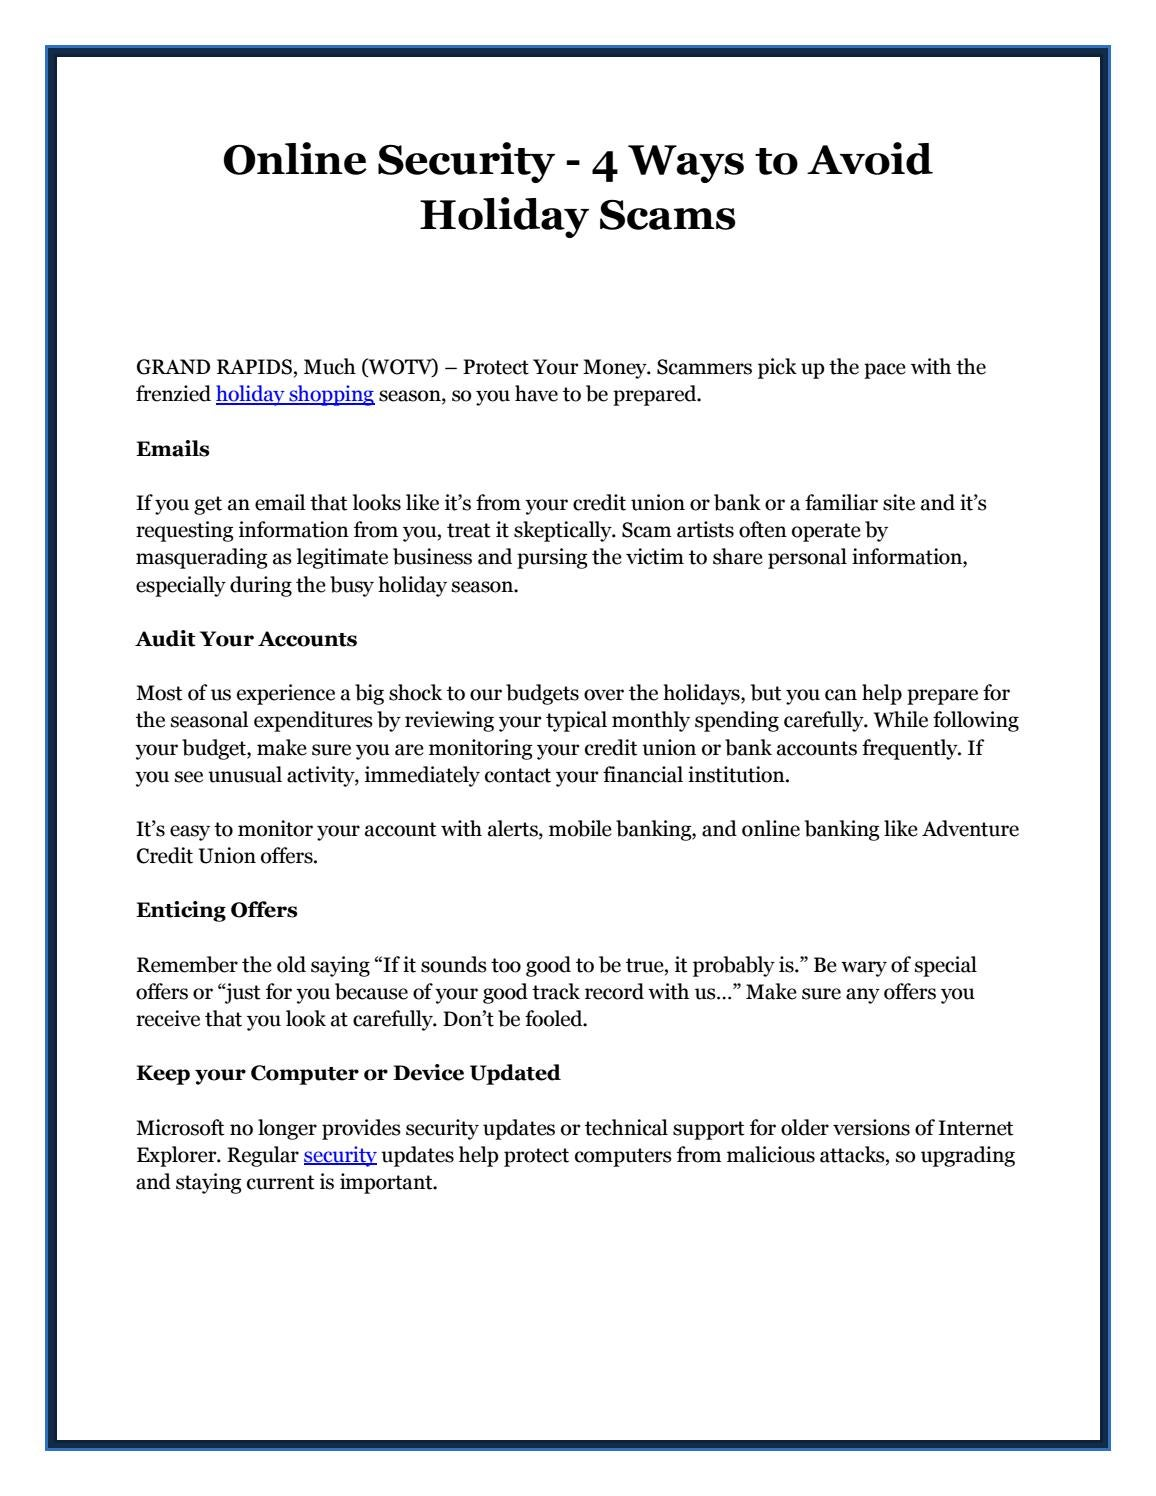 Online Security 4 Ways To Avoid Holiday Scams By Giselda Esposito